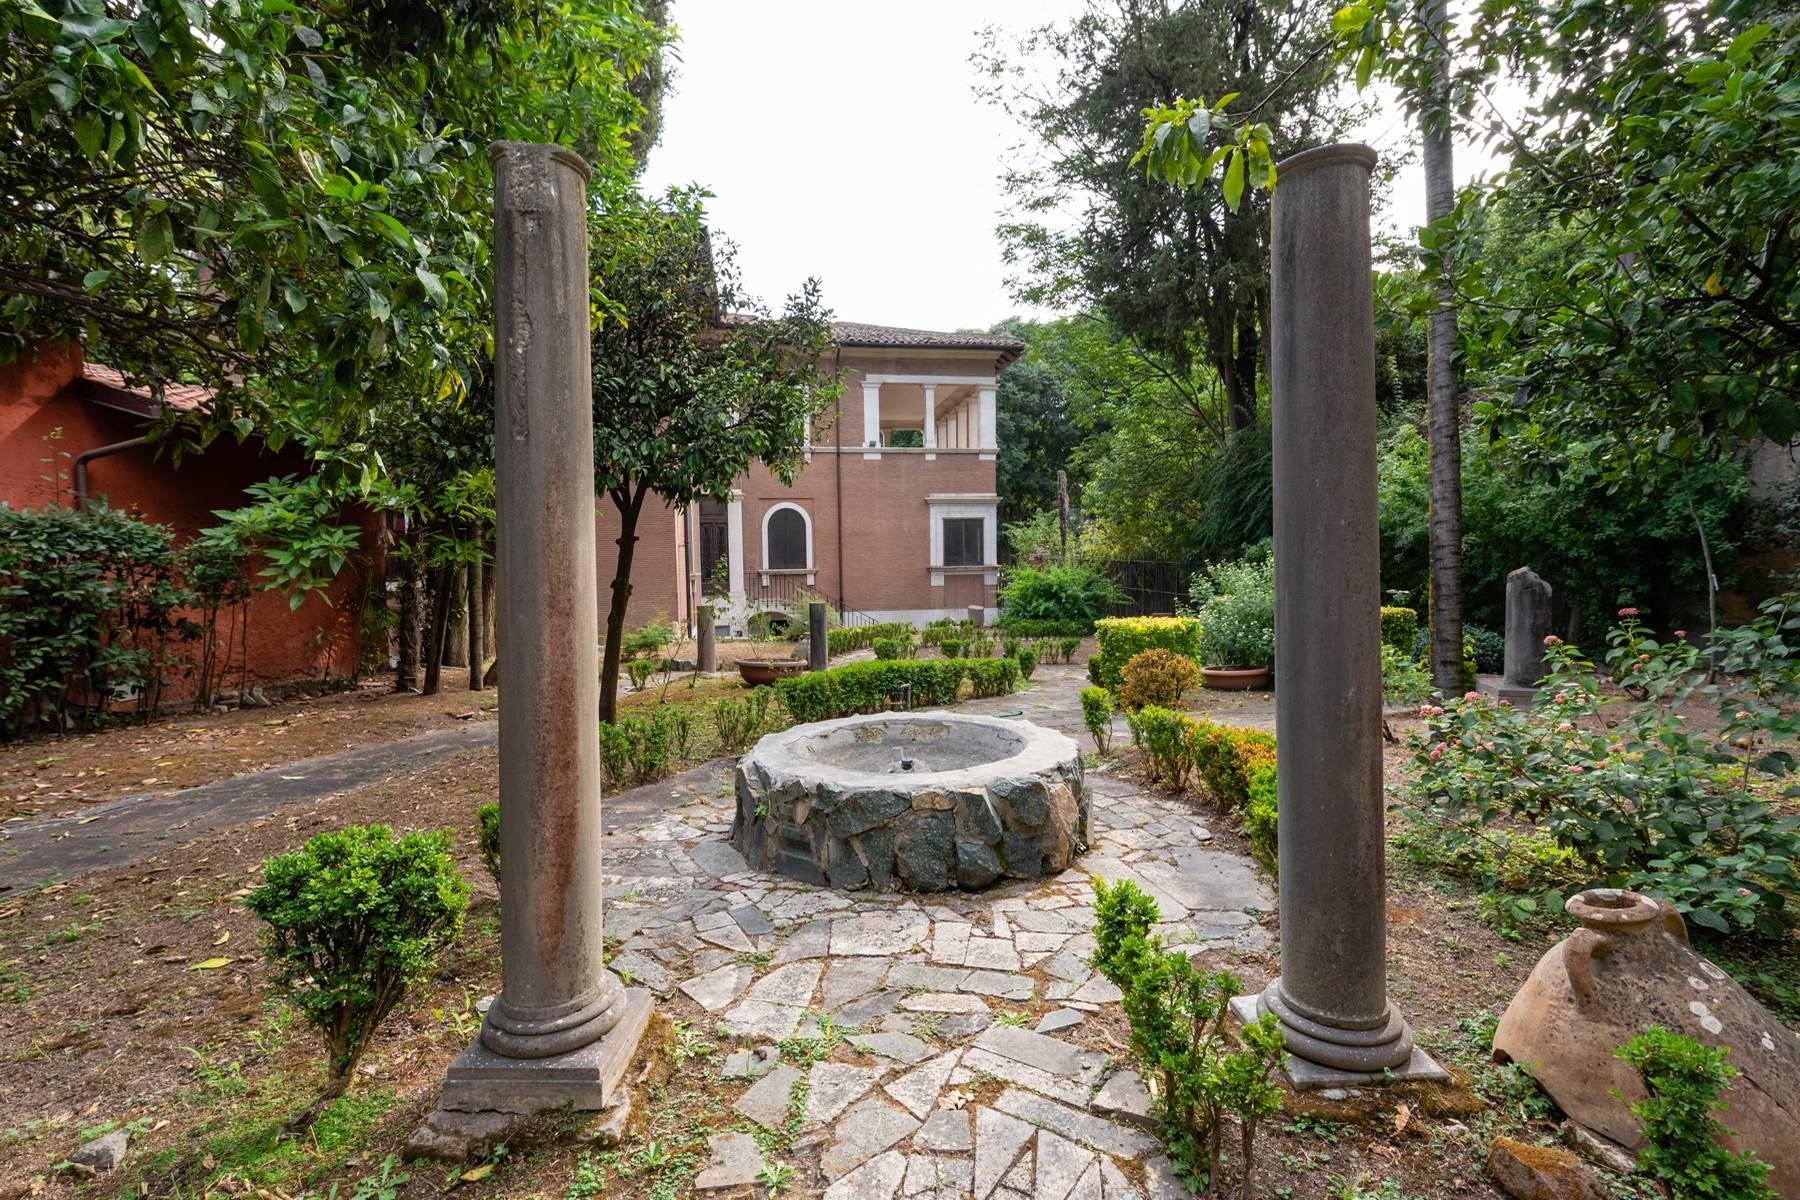 Elegant classical  Villa in the heart of Rome's archaeological ruins - 12